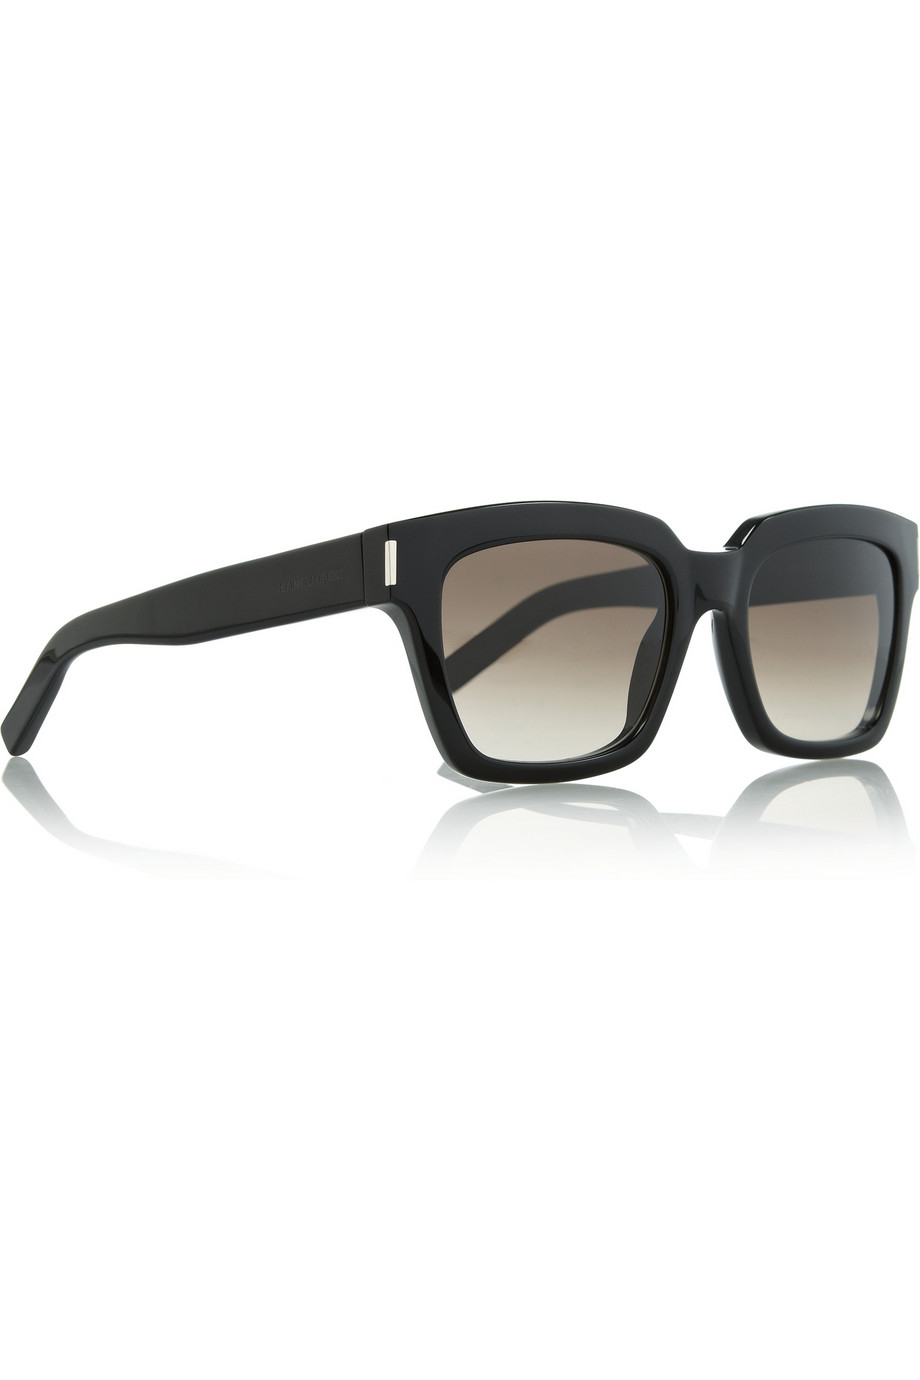 931f3c9f5cc Lyst - Saint Laurent Bold Square-Frame Acetate Sunglasses in Black